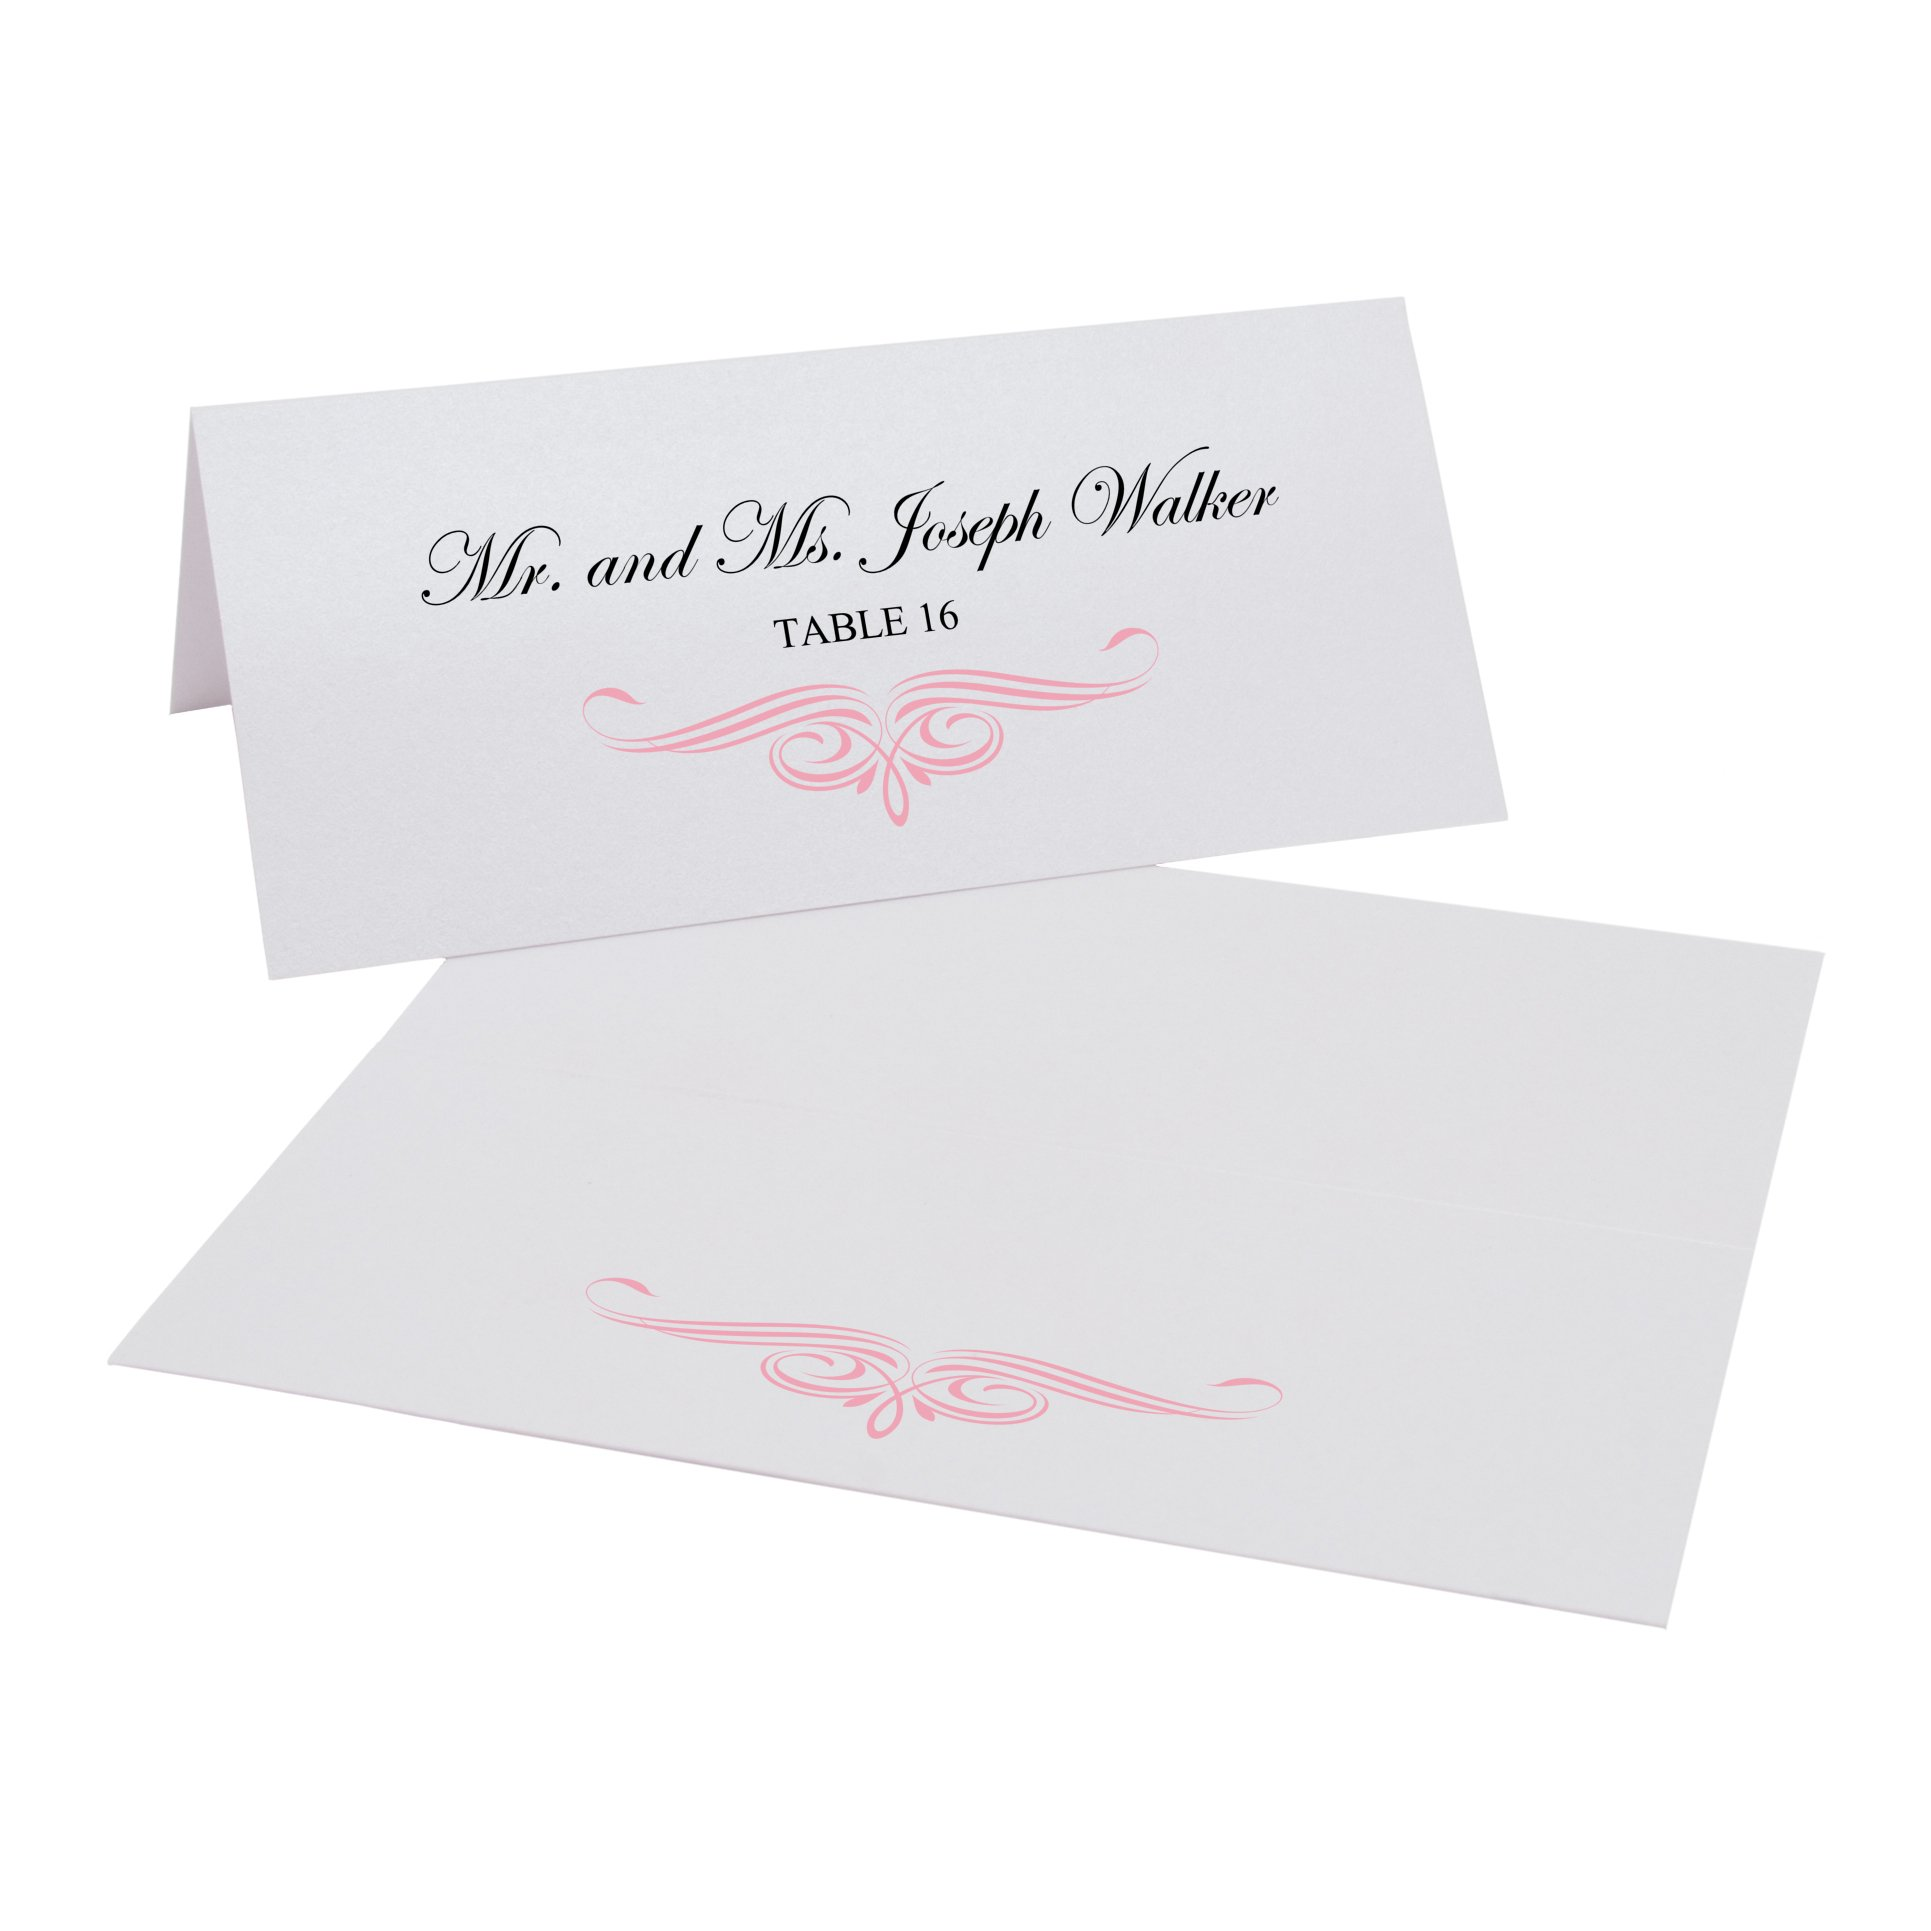 Ornate Flourish Easy Print Place Cards, Pearl White, Pink, Set of 400 (100 Sheets) by Documents and Designs